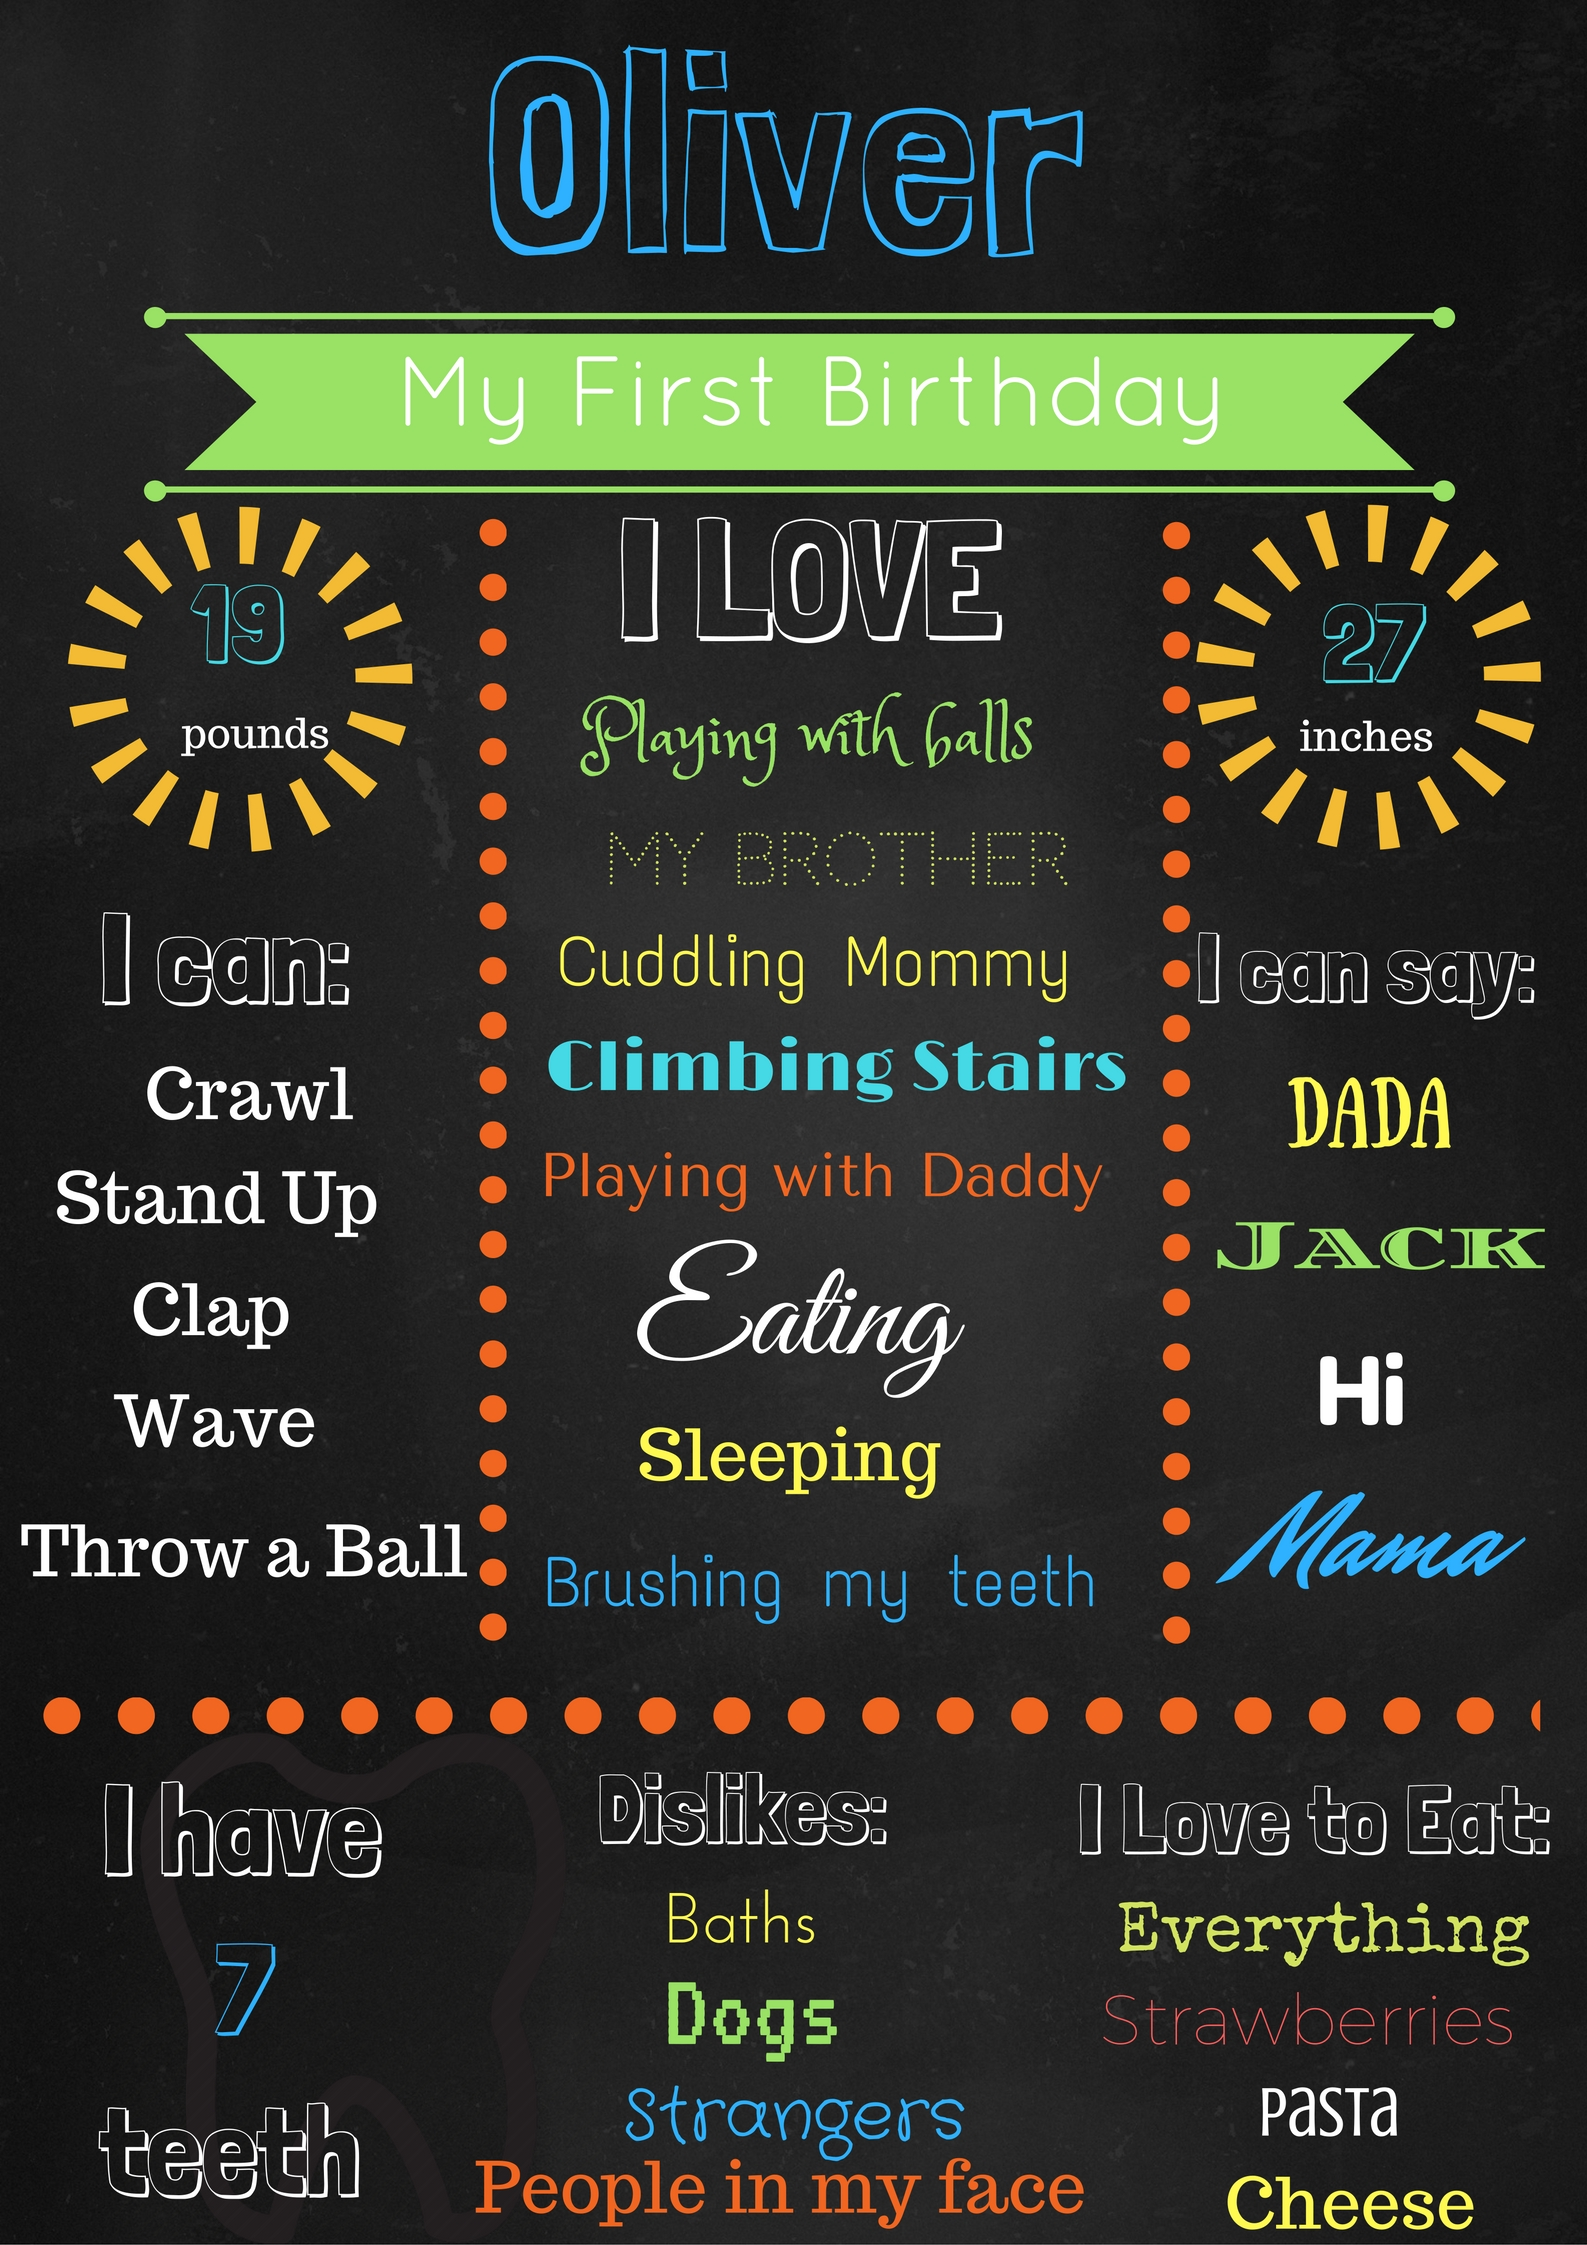 Free editable and printable chalkboard birthday poster for your child's birthday! This can be easily edited with your child's name, stats, and with different colors and fonts! via @clarkscondensed